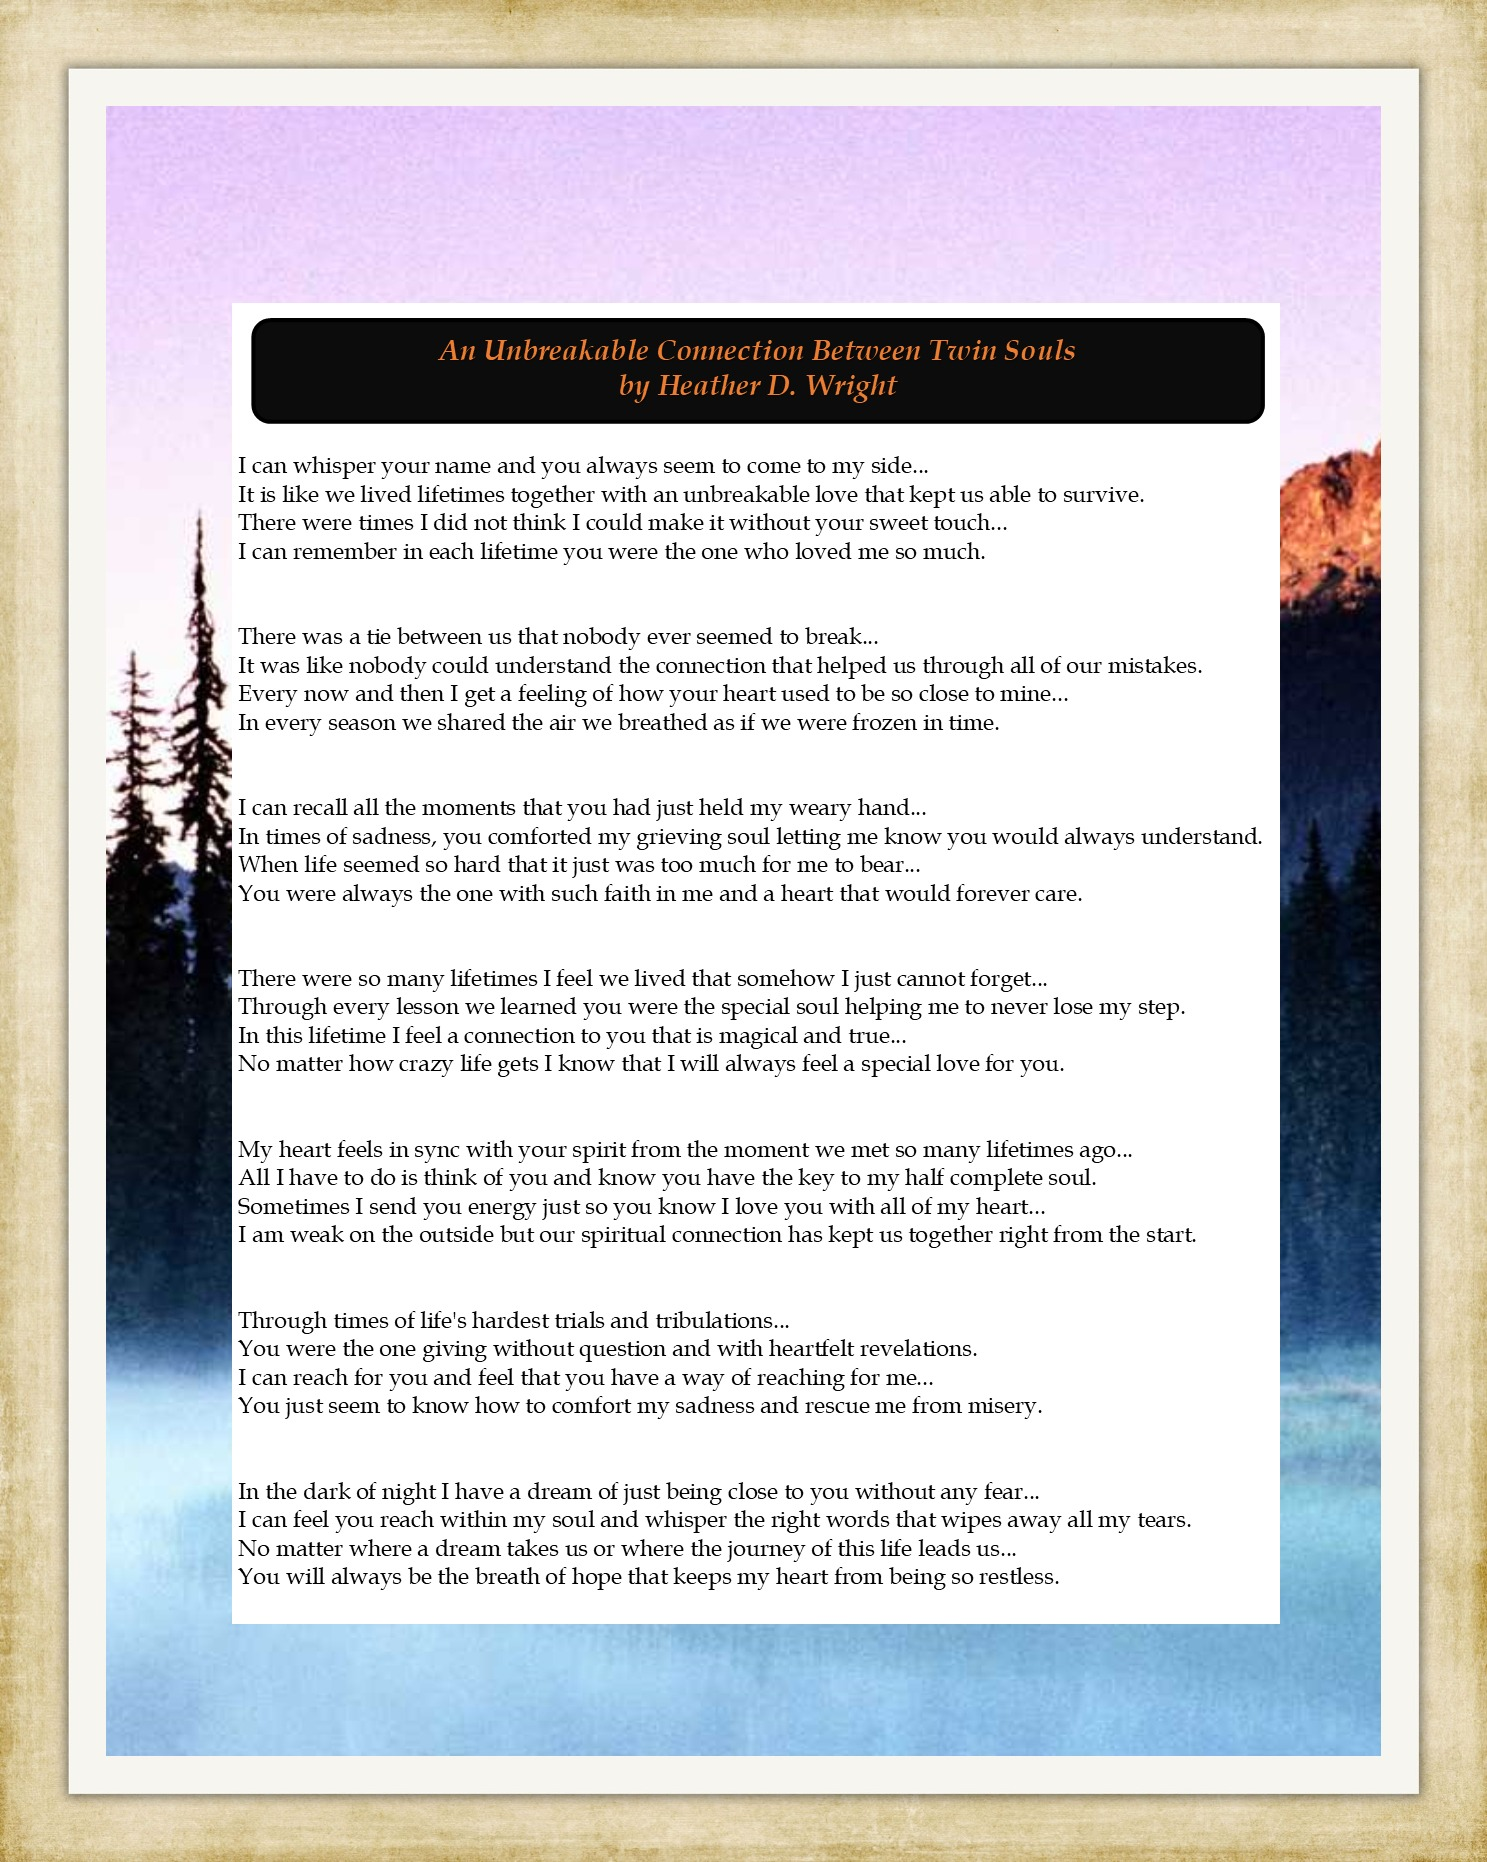 An Unbreakable Connection Between Twin Souls - Printable Instant Download